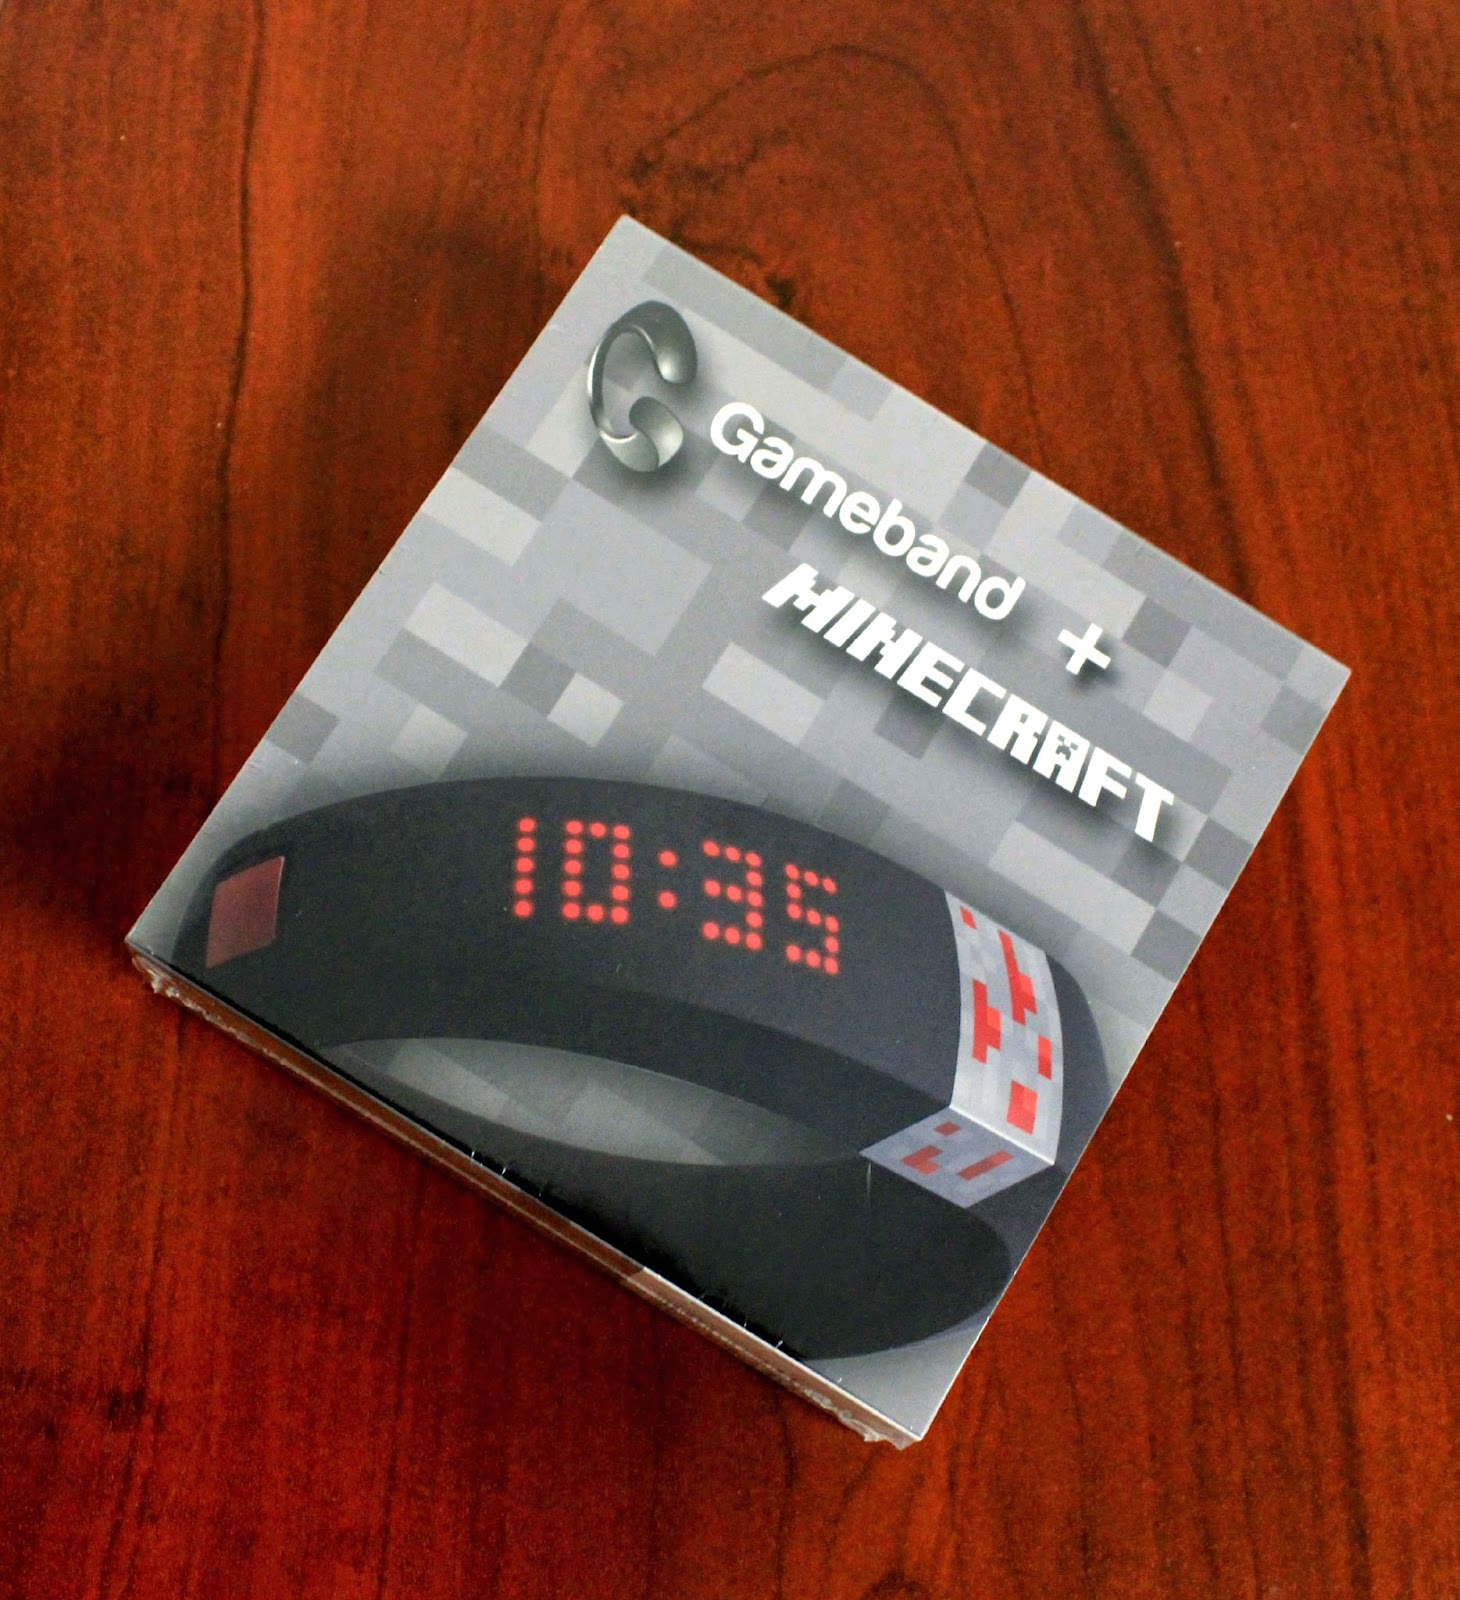 Gameband Minecraft™: the perfect gift for Minecraft fans! #GameOnTheGo #ad